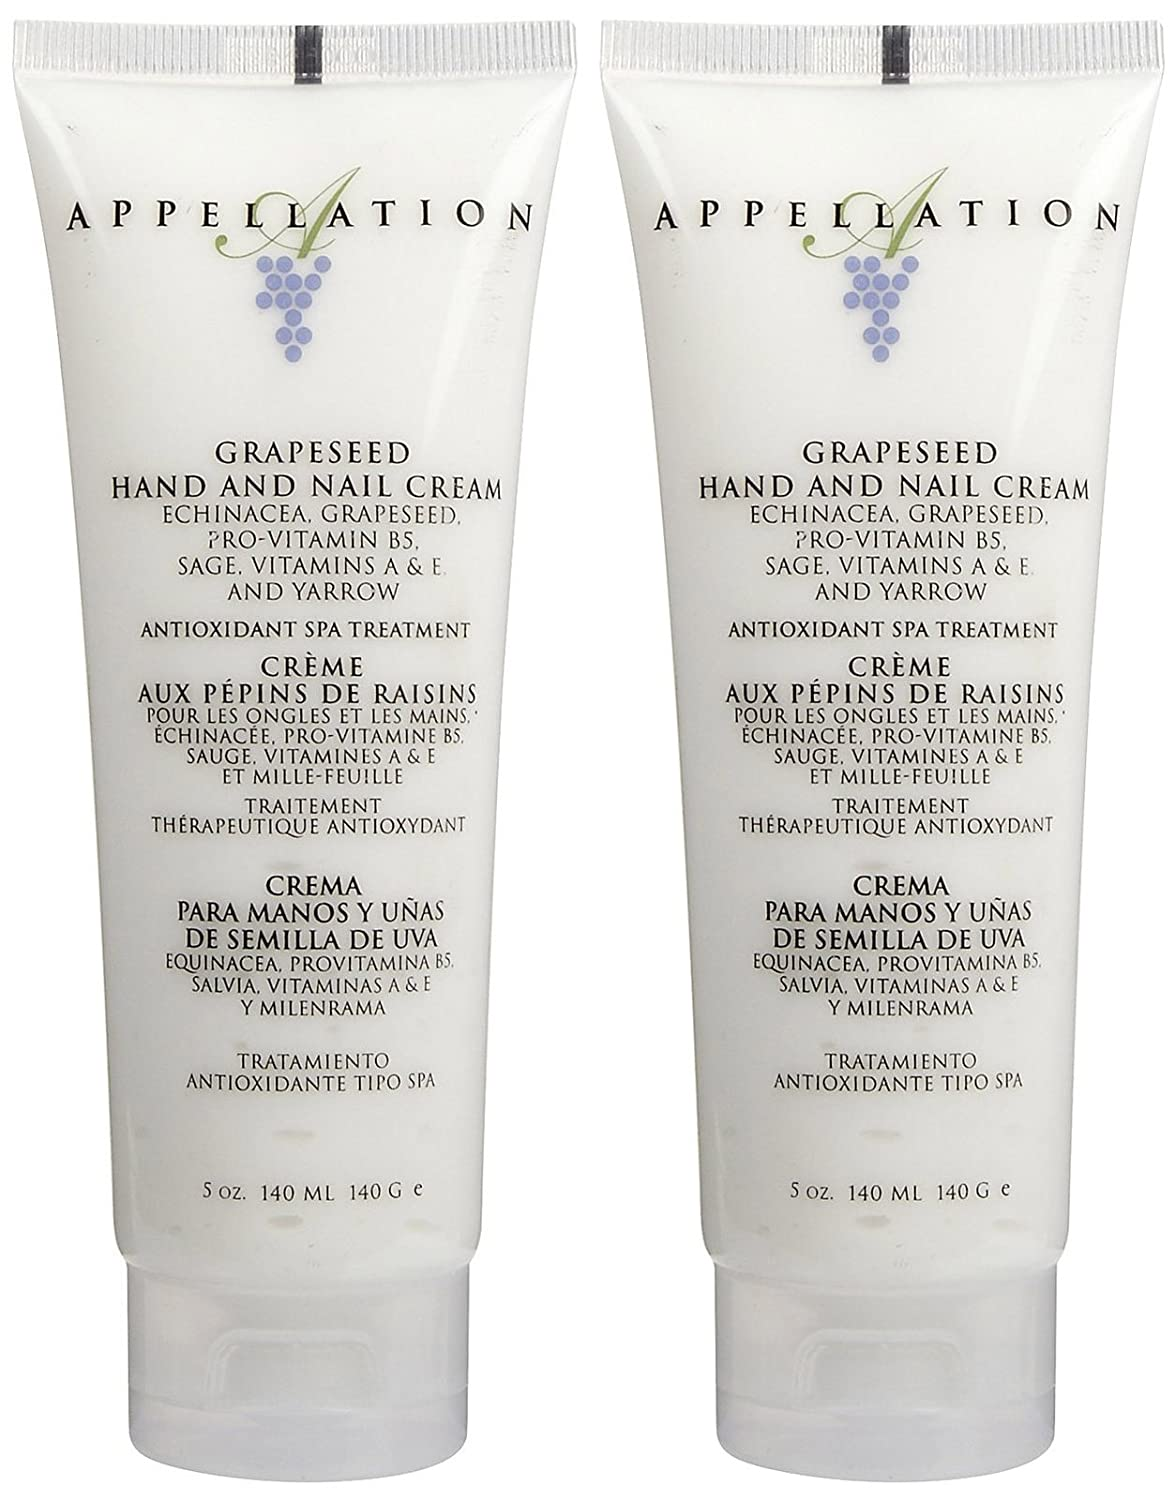 Amazon.com : California North ppellation Grapeseed Hand & Nail Cream - 5 oz - 2 pk : Beauty